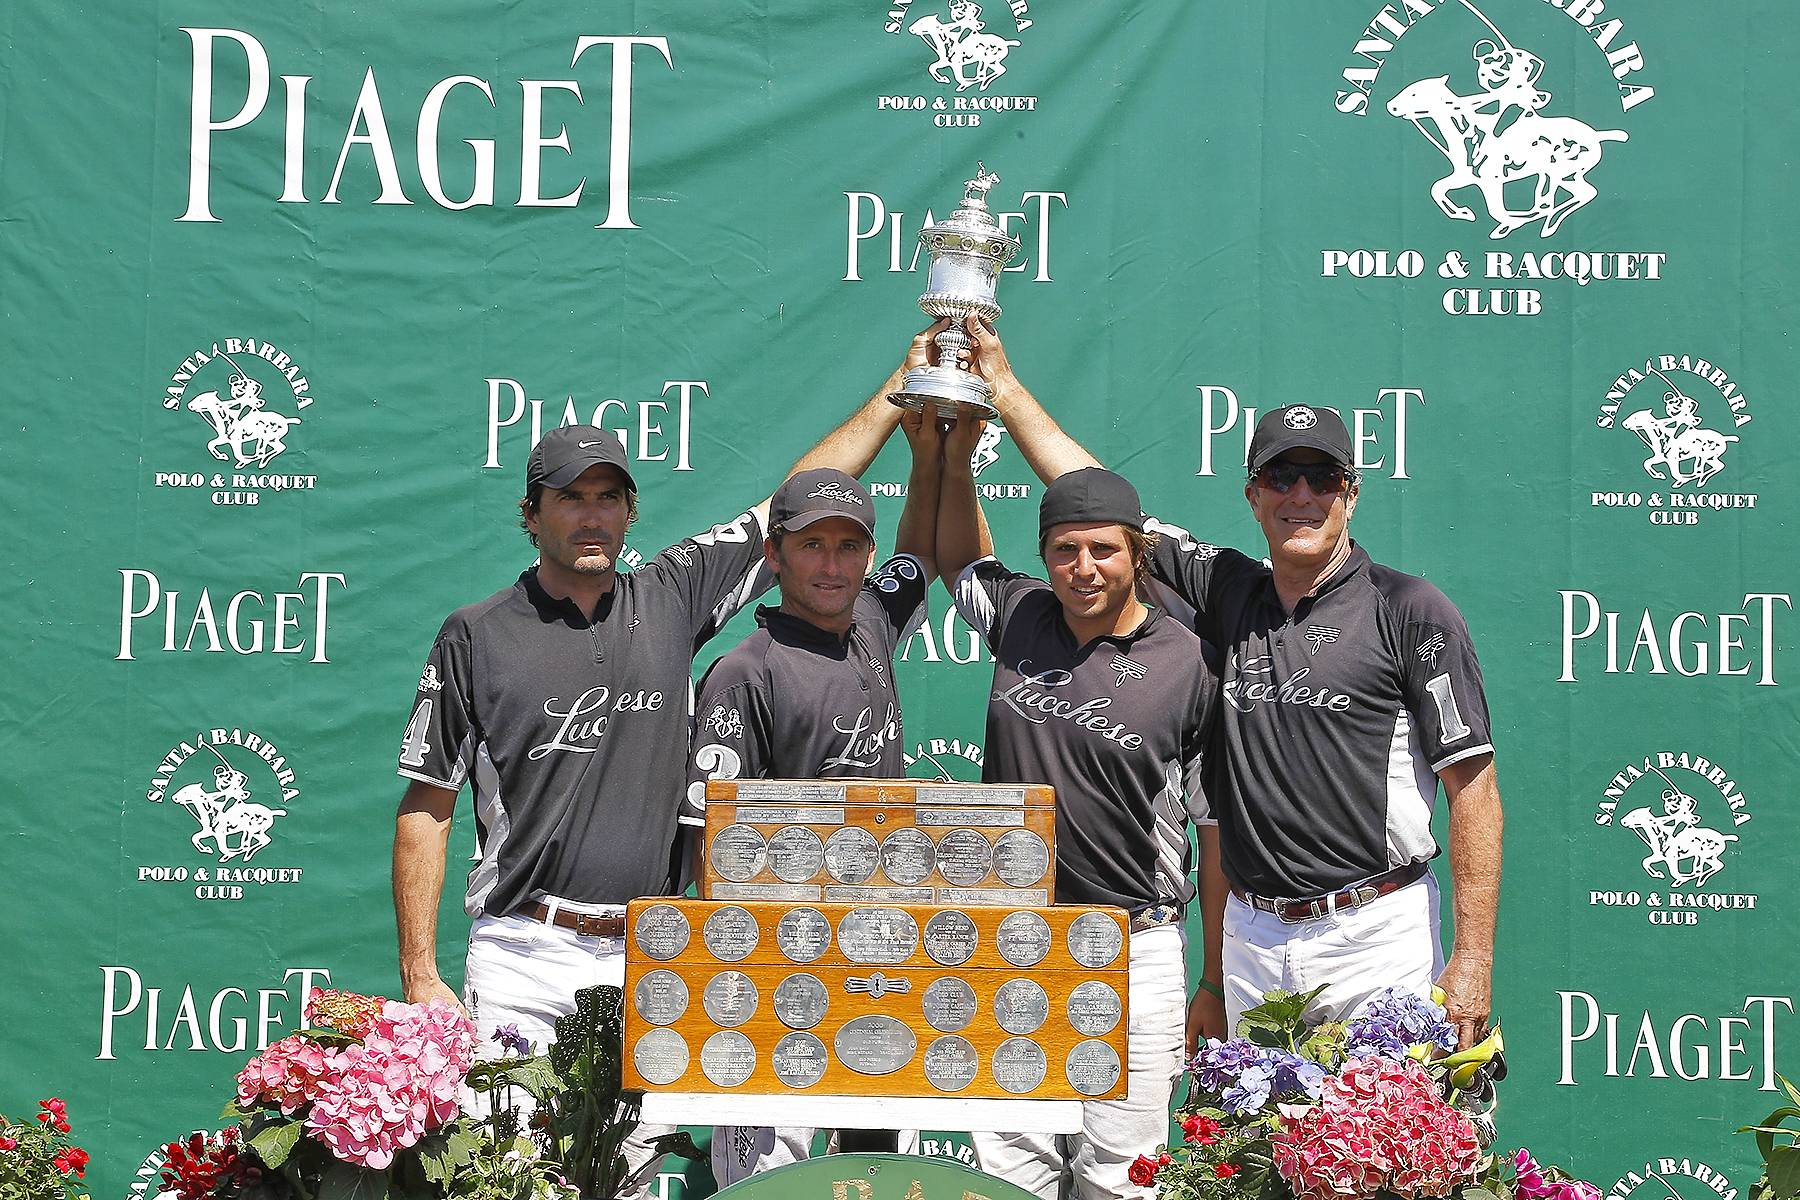 Piaget Silver Cup Final and Consilation